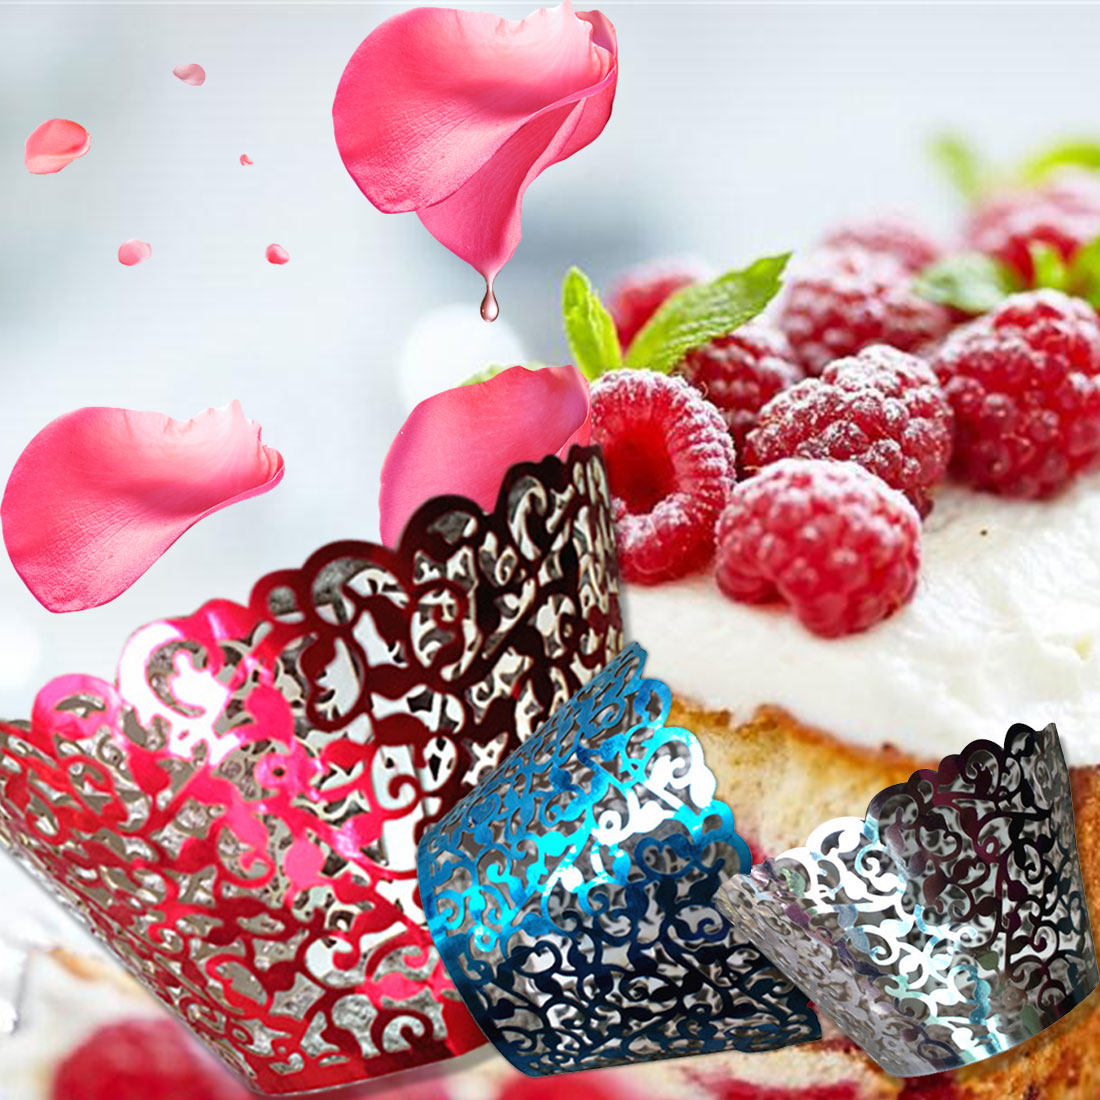 Home Cake Decorating Supply Co: 12Pcs Vine Lace Cup Cake Box Cut Paper Wedding Cupcake